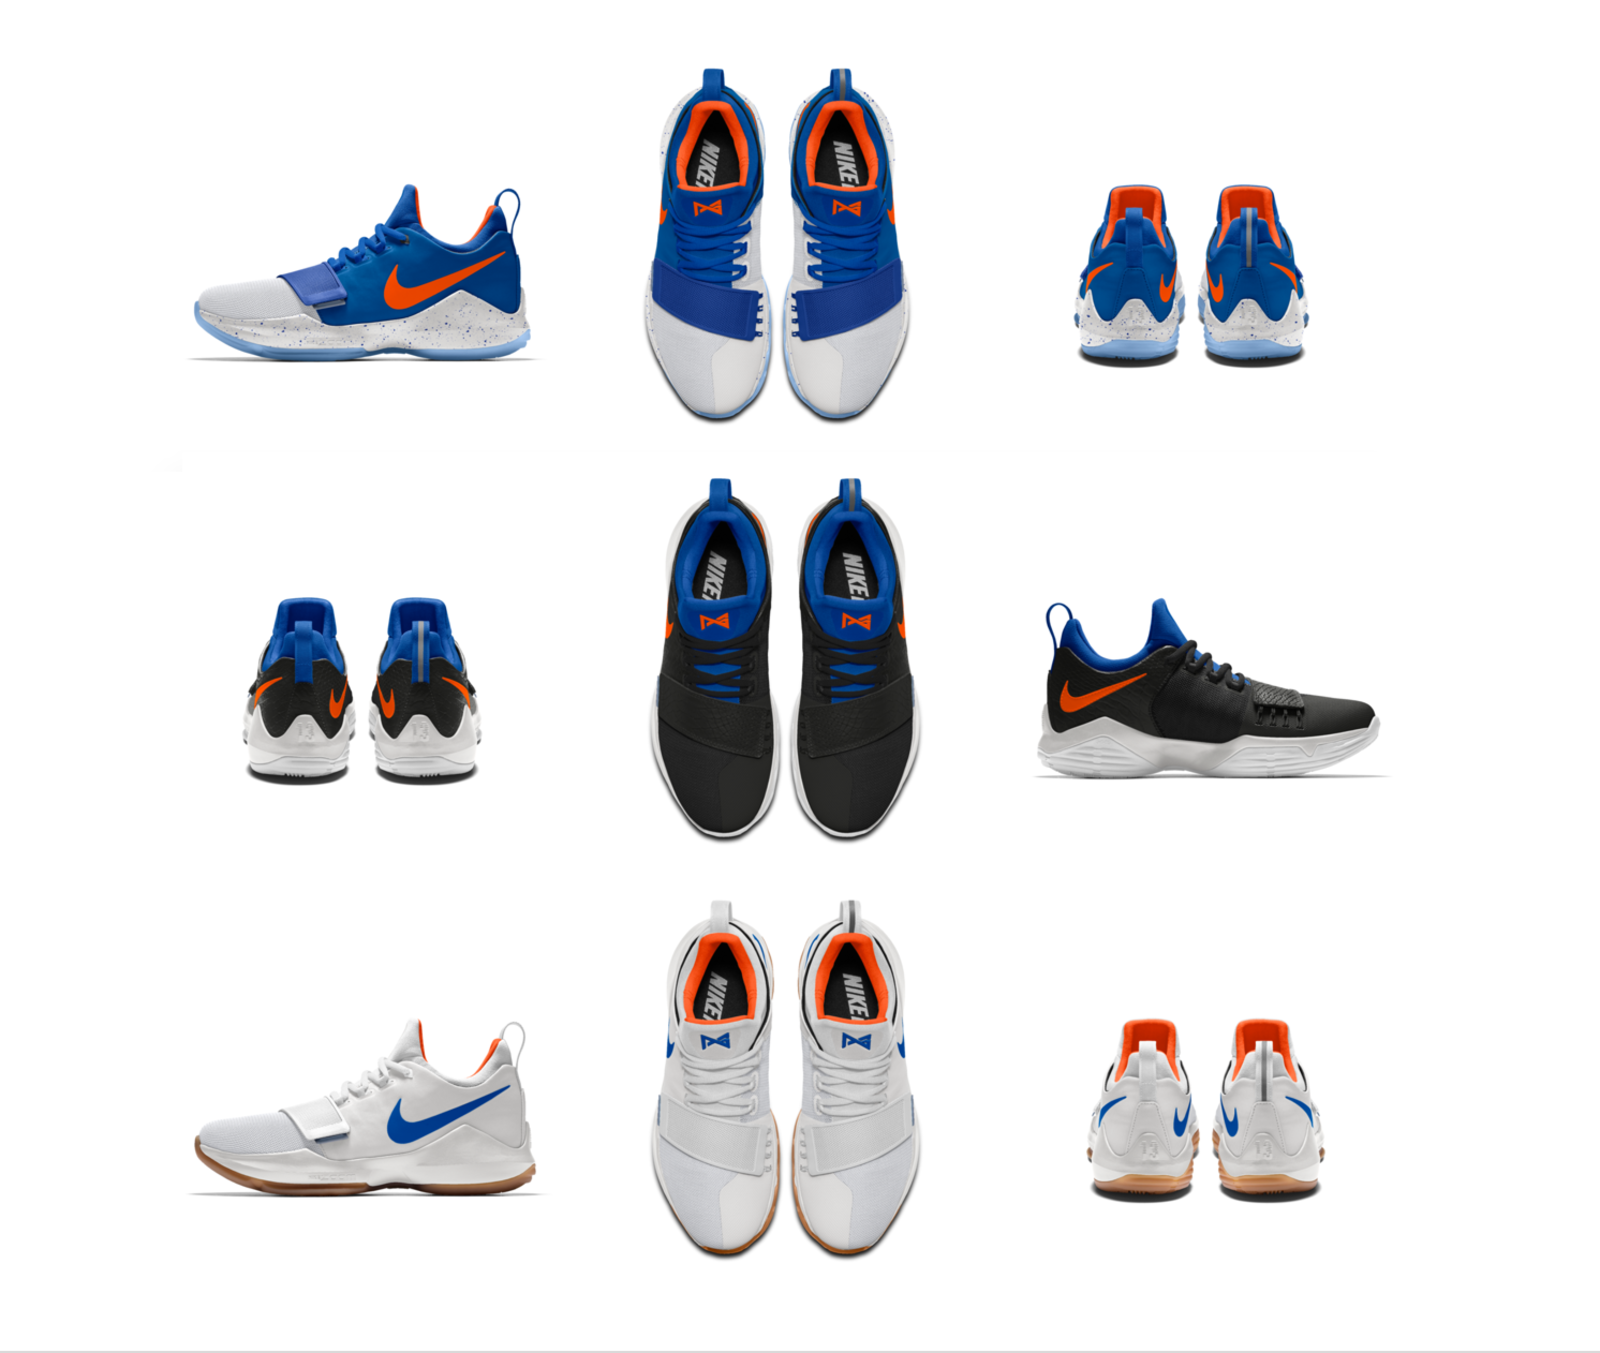 Customize the PG1 as Paul George